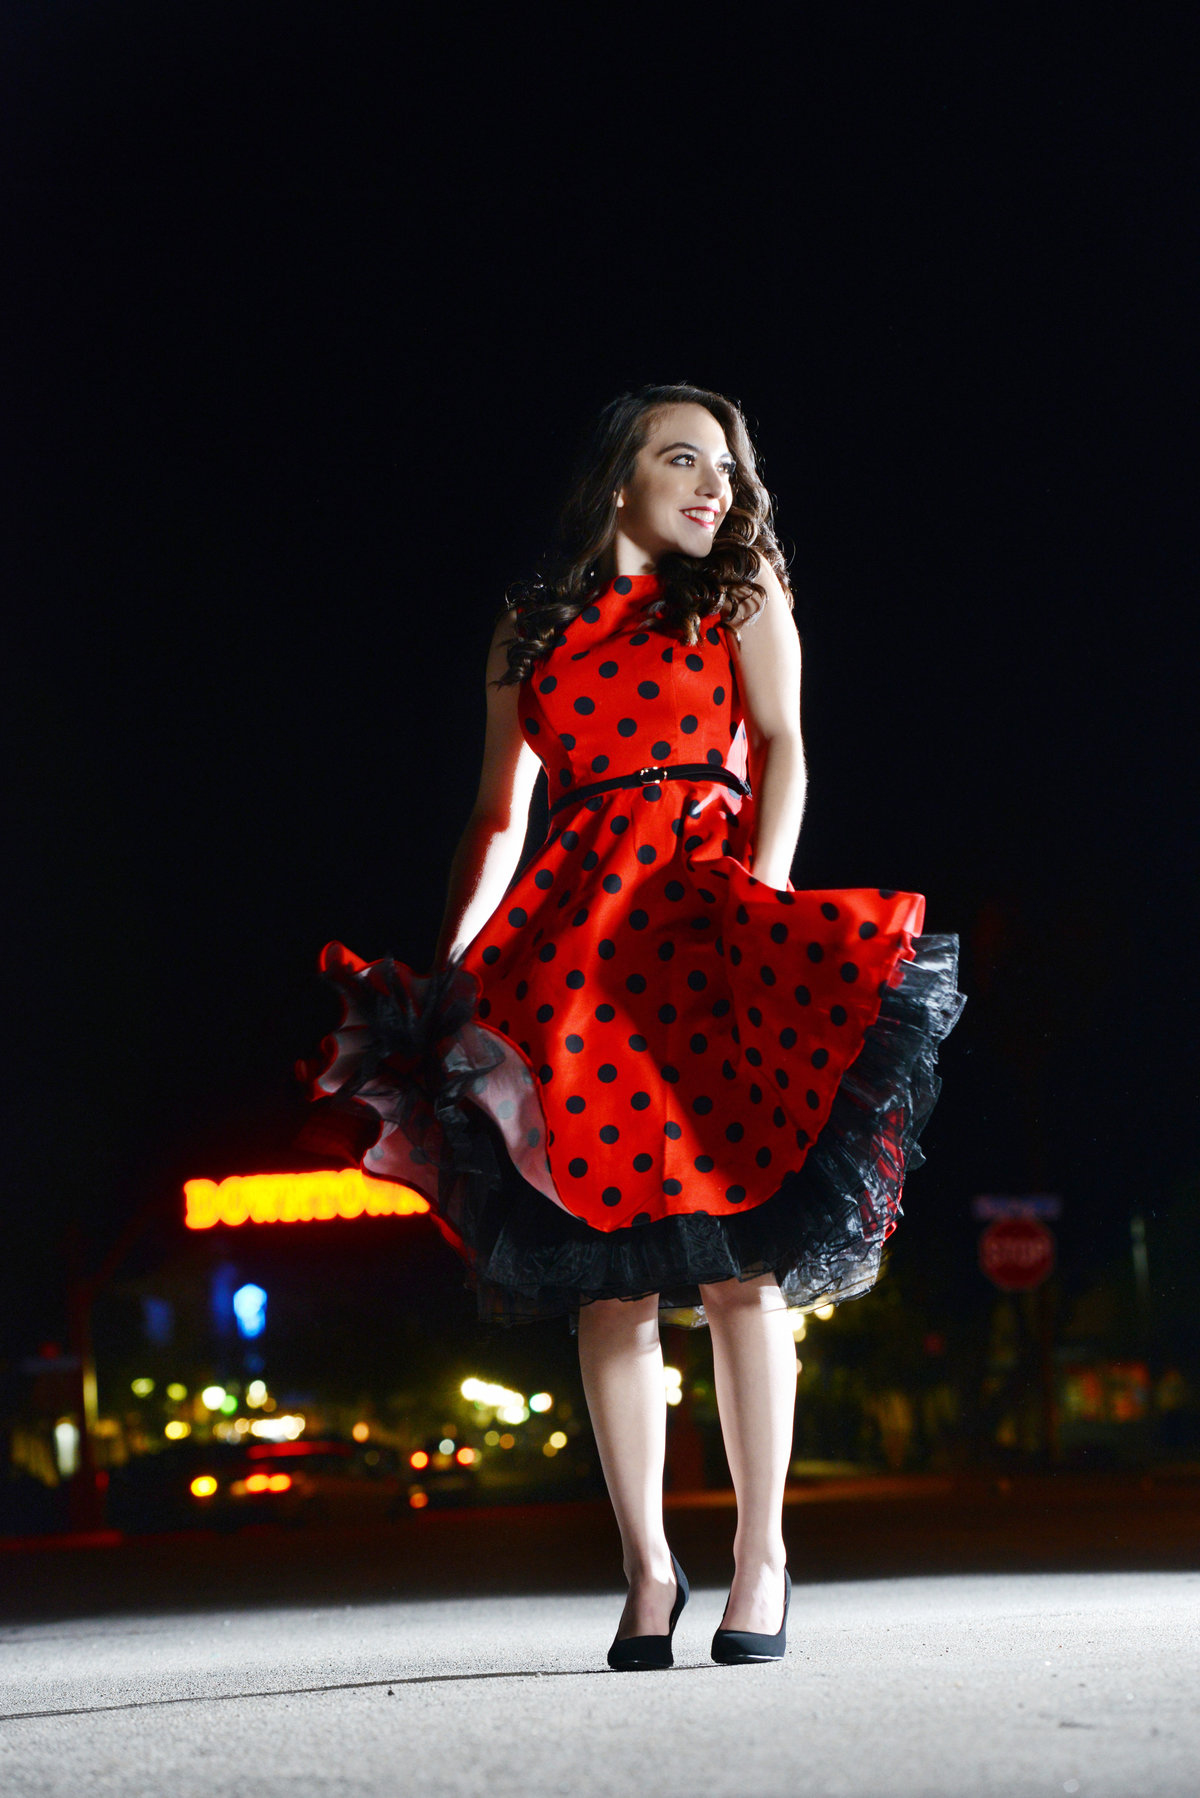 senior in red dress at night